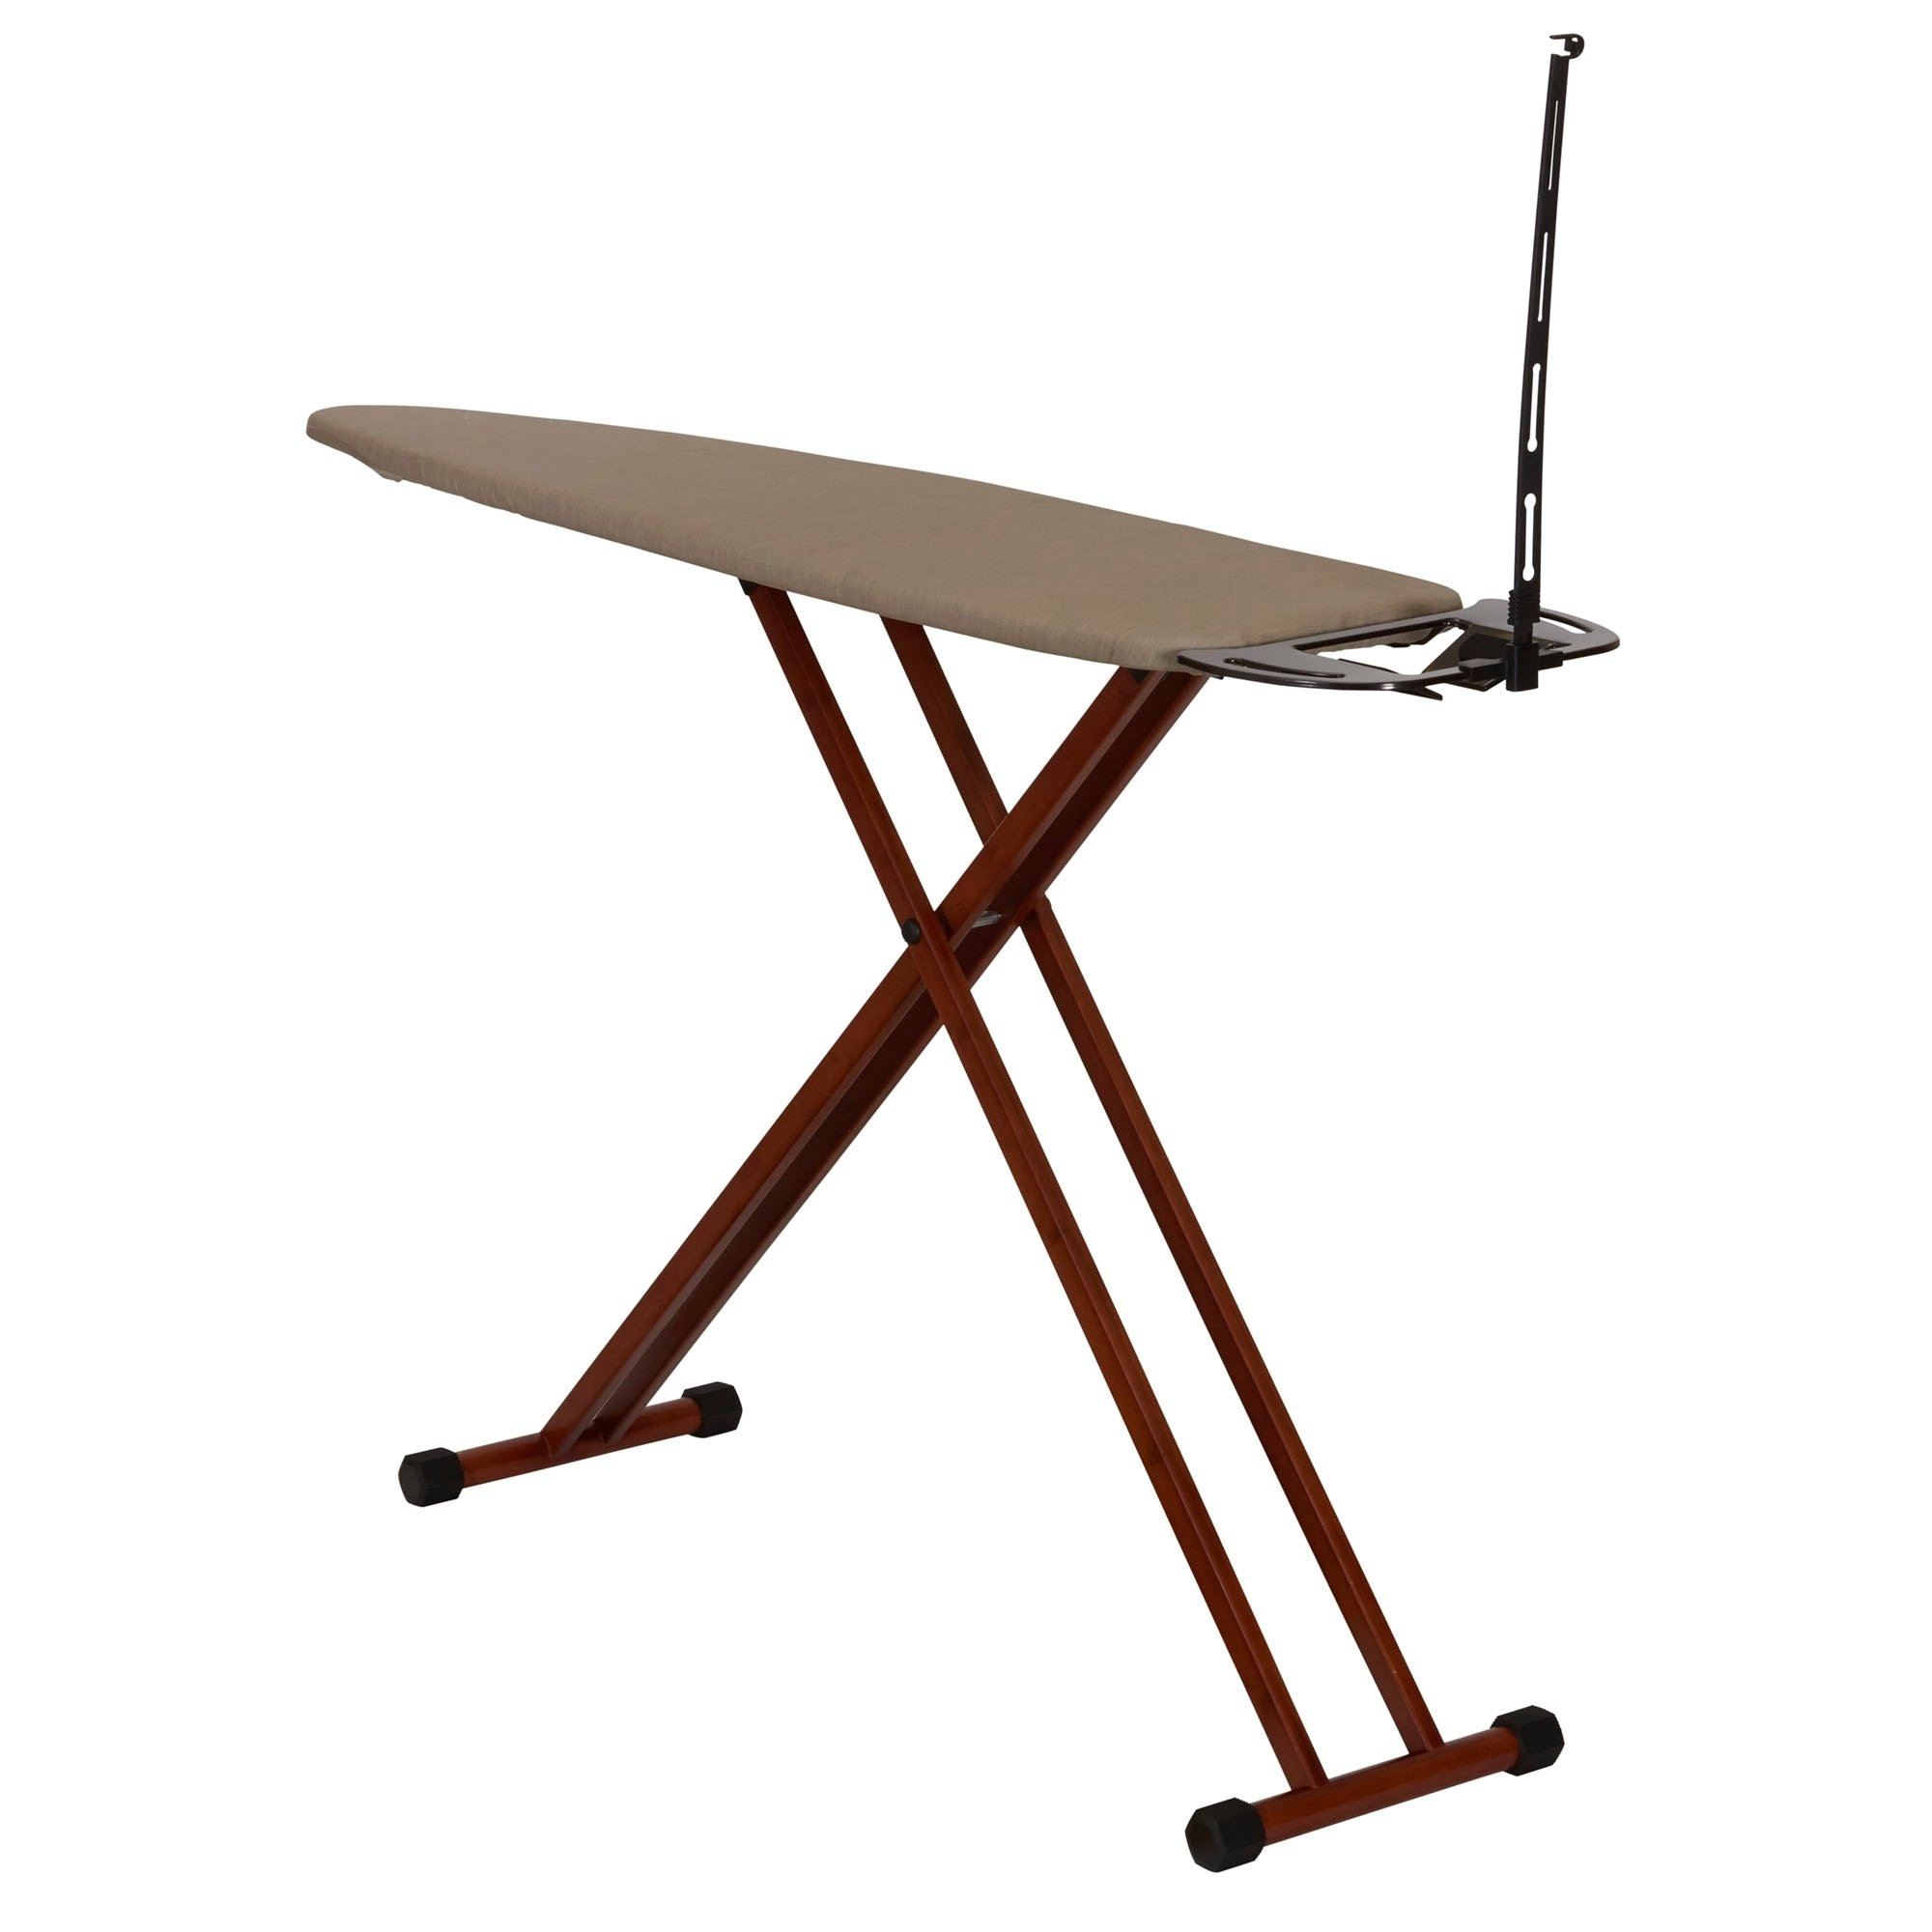 MattsGlobal Bamboo Leg Ironing Board with Iron Rest Cotton Wood Free Standing Iron Holder Dark Frame